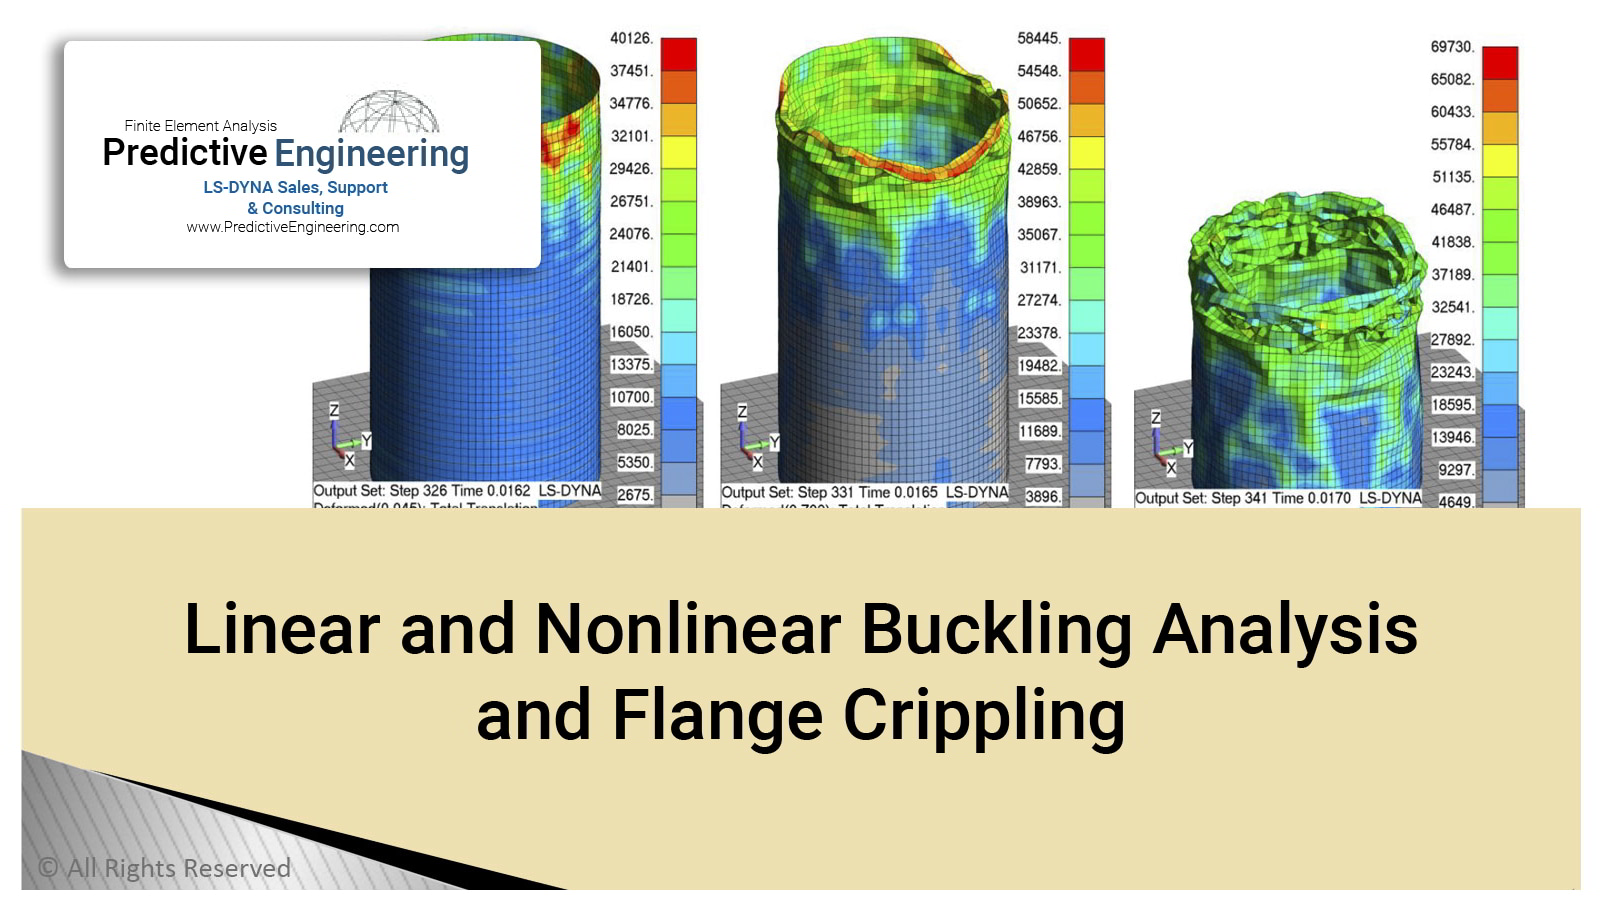 Linear and Nonlinear Buckling Analysis and Flange Crippling Image